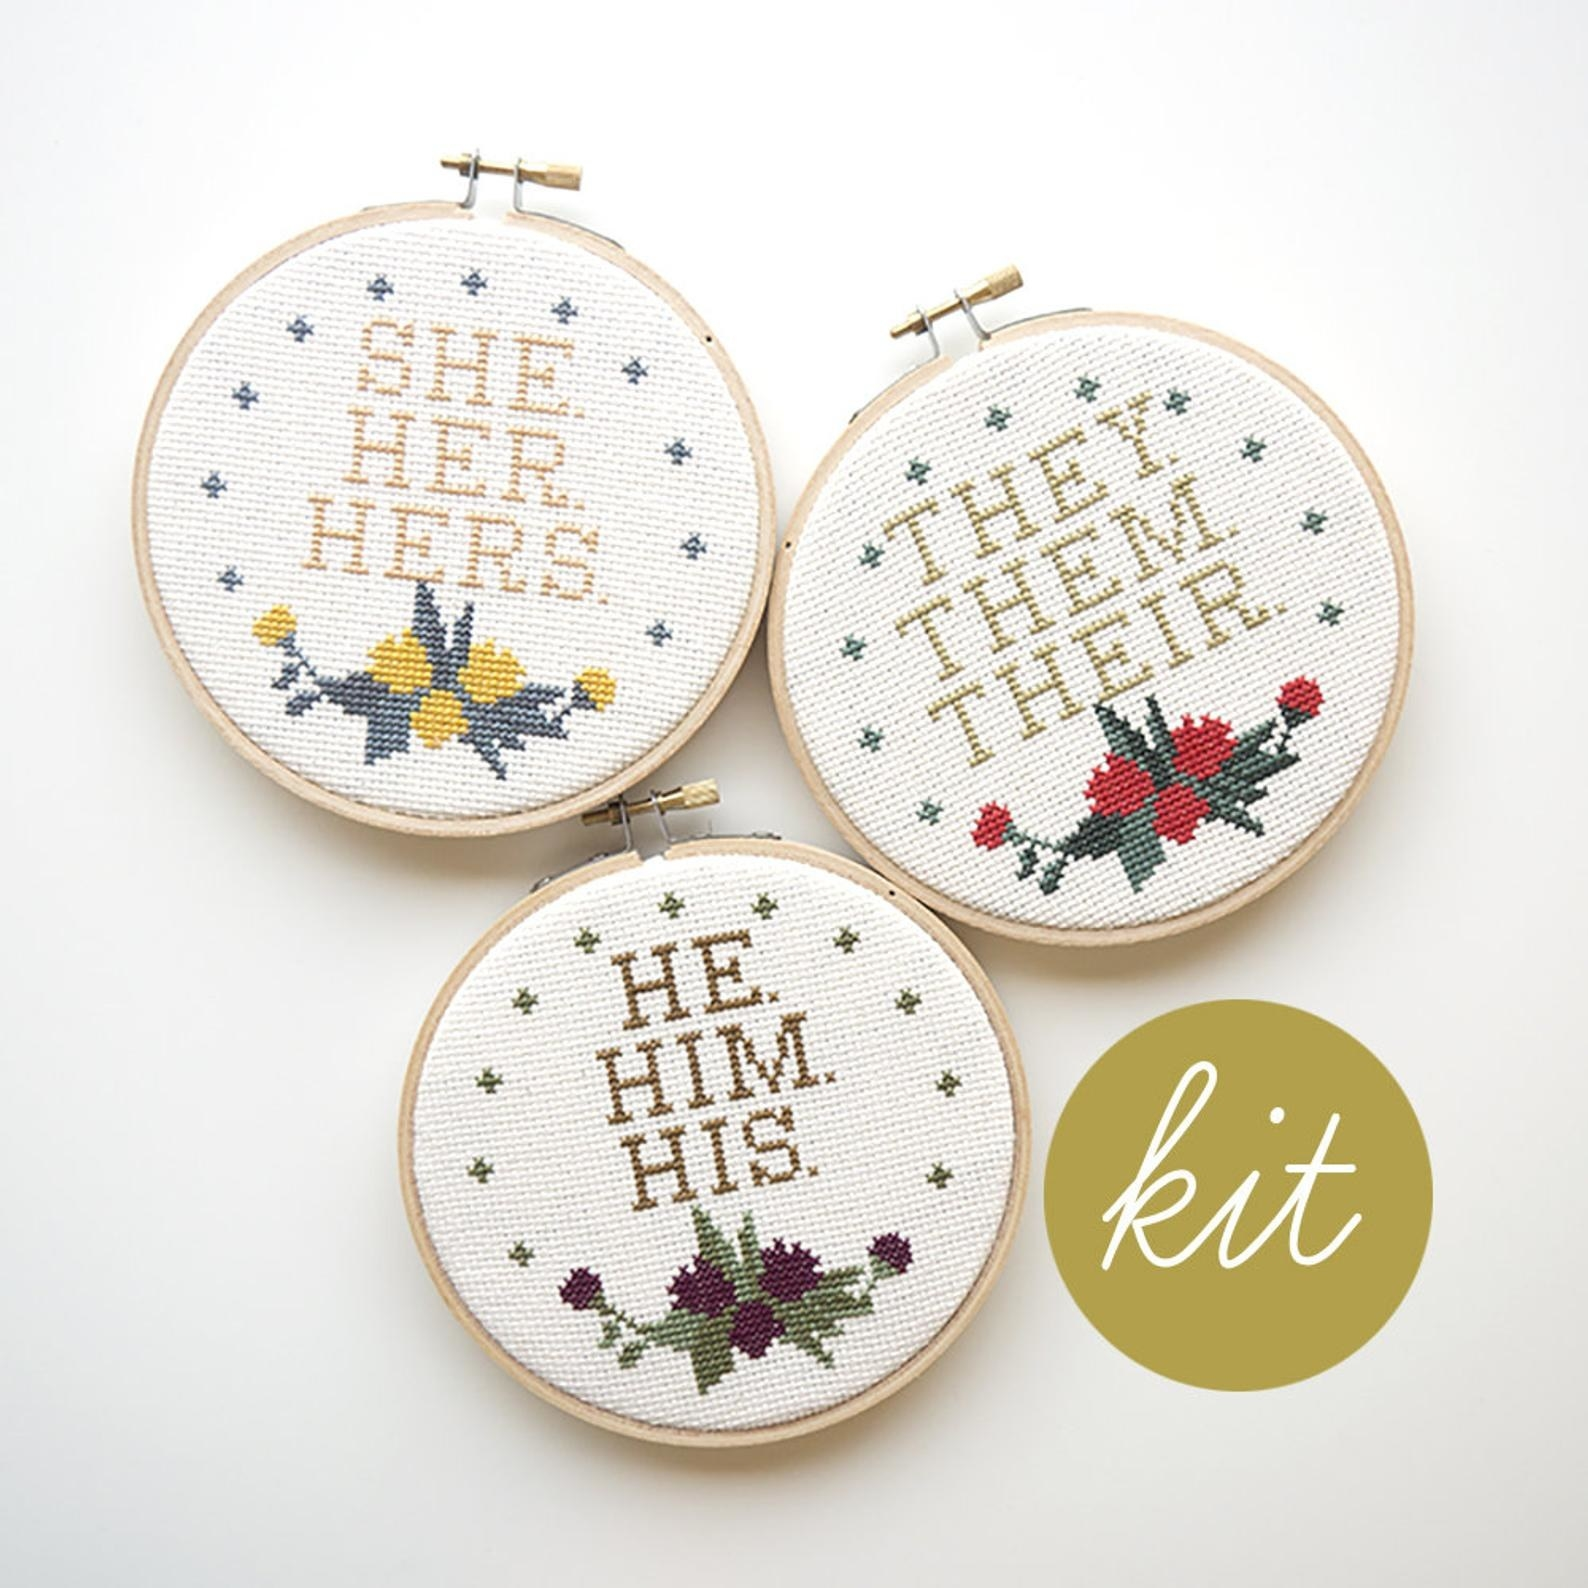 "Three cross stitch loops, all with small floral design at the bottom and the one on the top left has the words ""Sher, Her, Hers"" the top right has the words ""They, Them, Their"", and the one in the middle bottom has the words ""He, Him, His"""